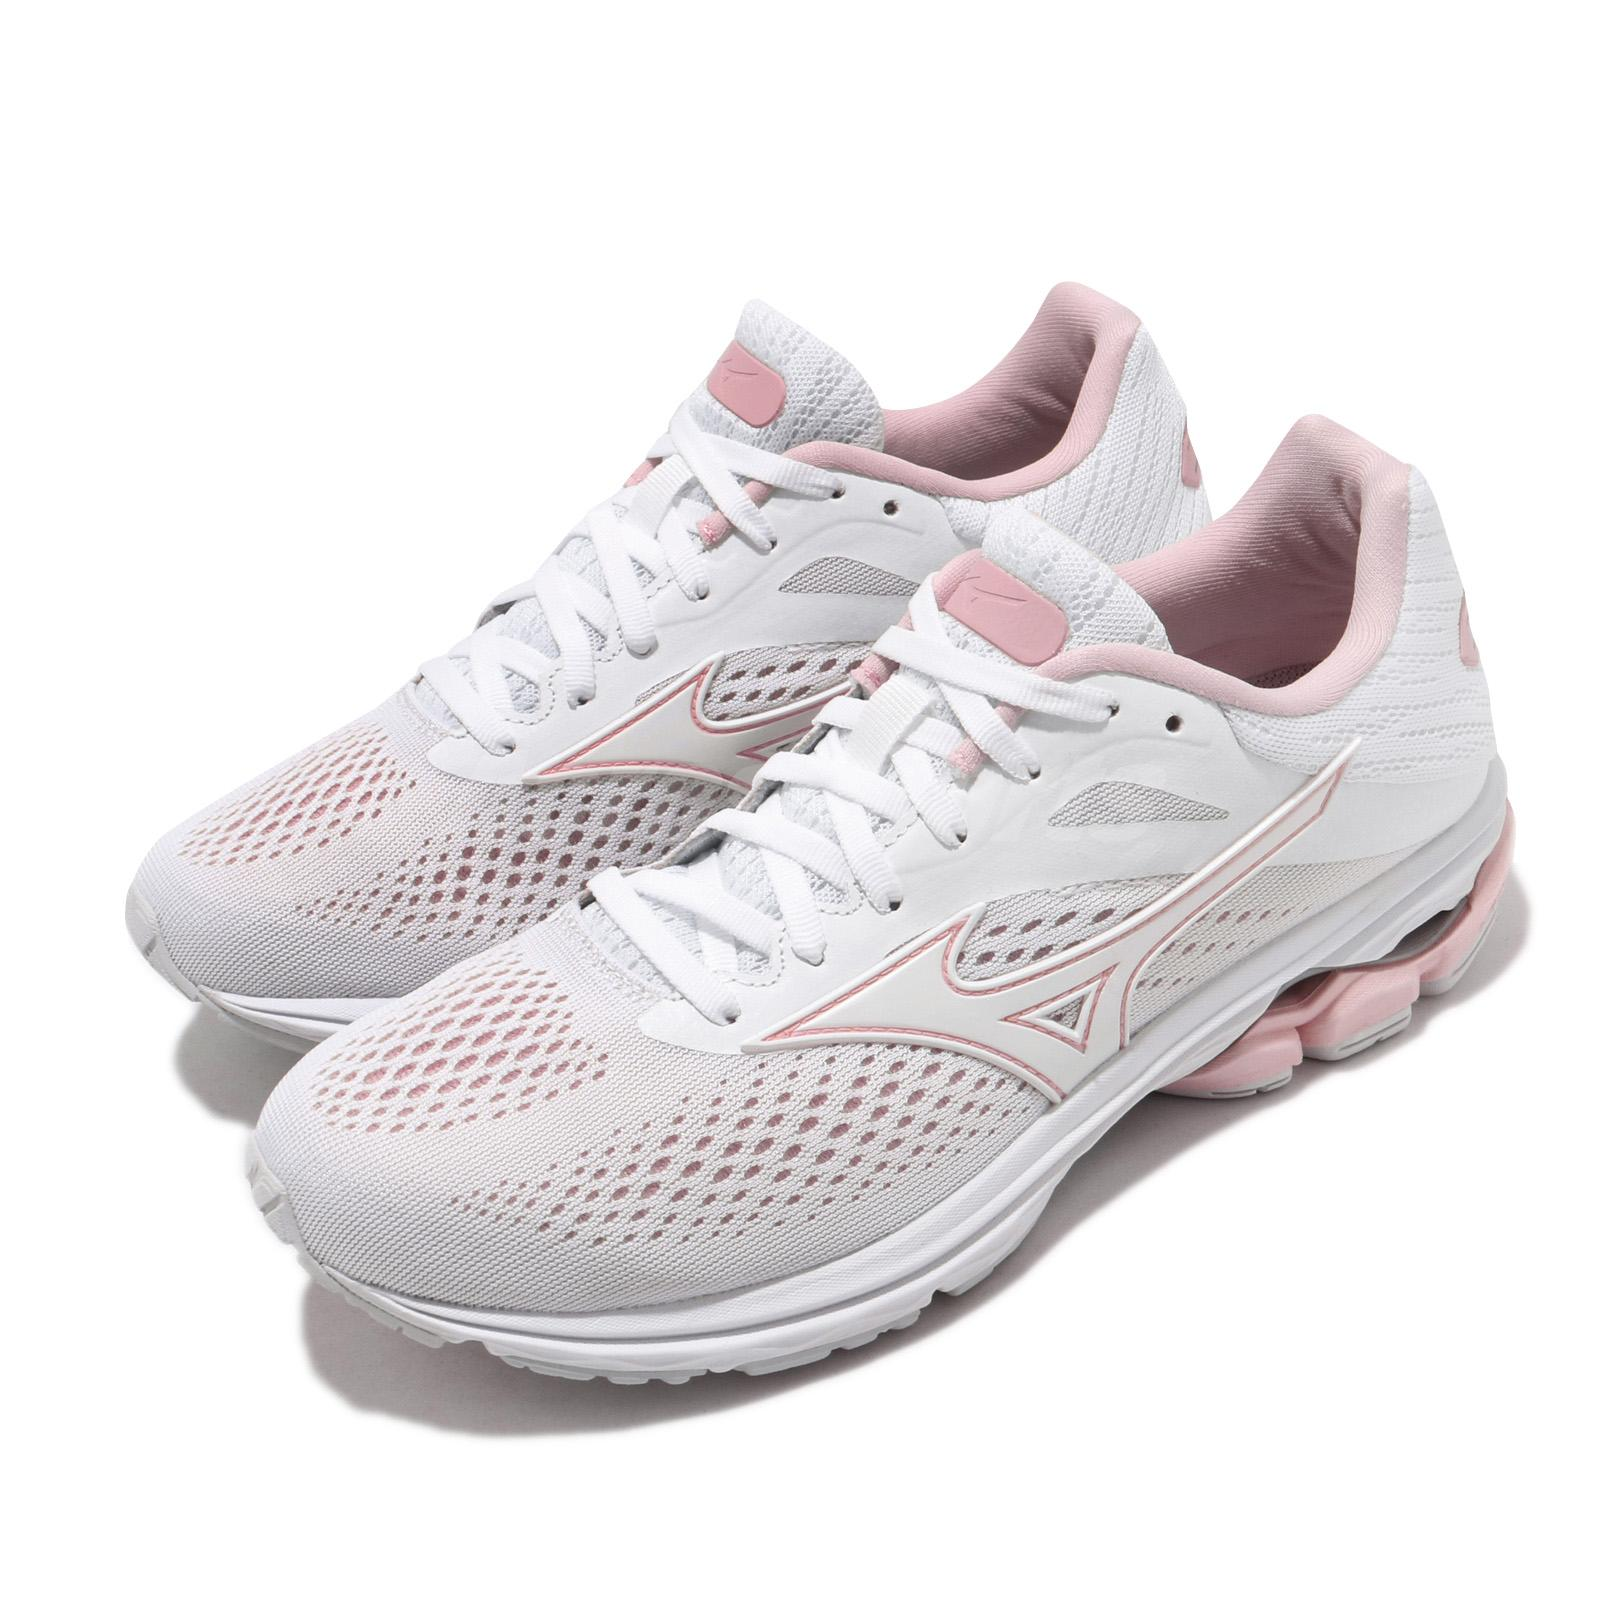 tenis mizuno wave legend 4 pre�o walmart juniors